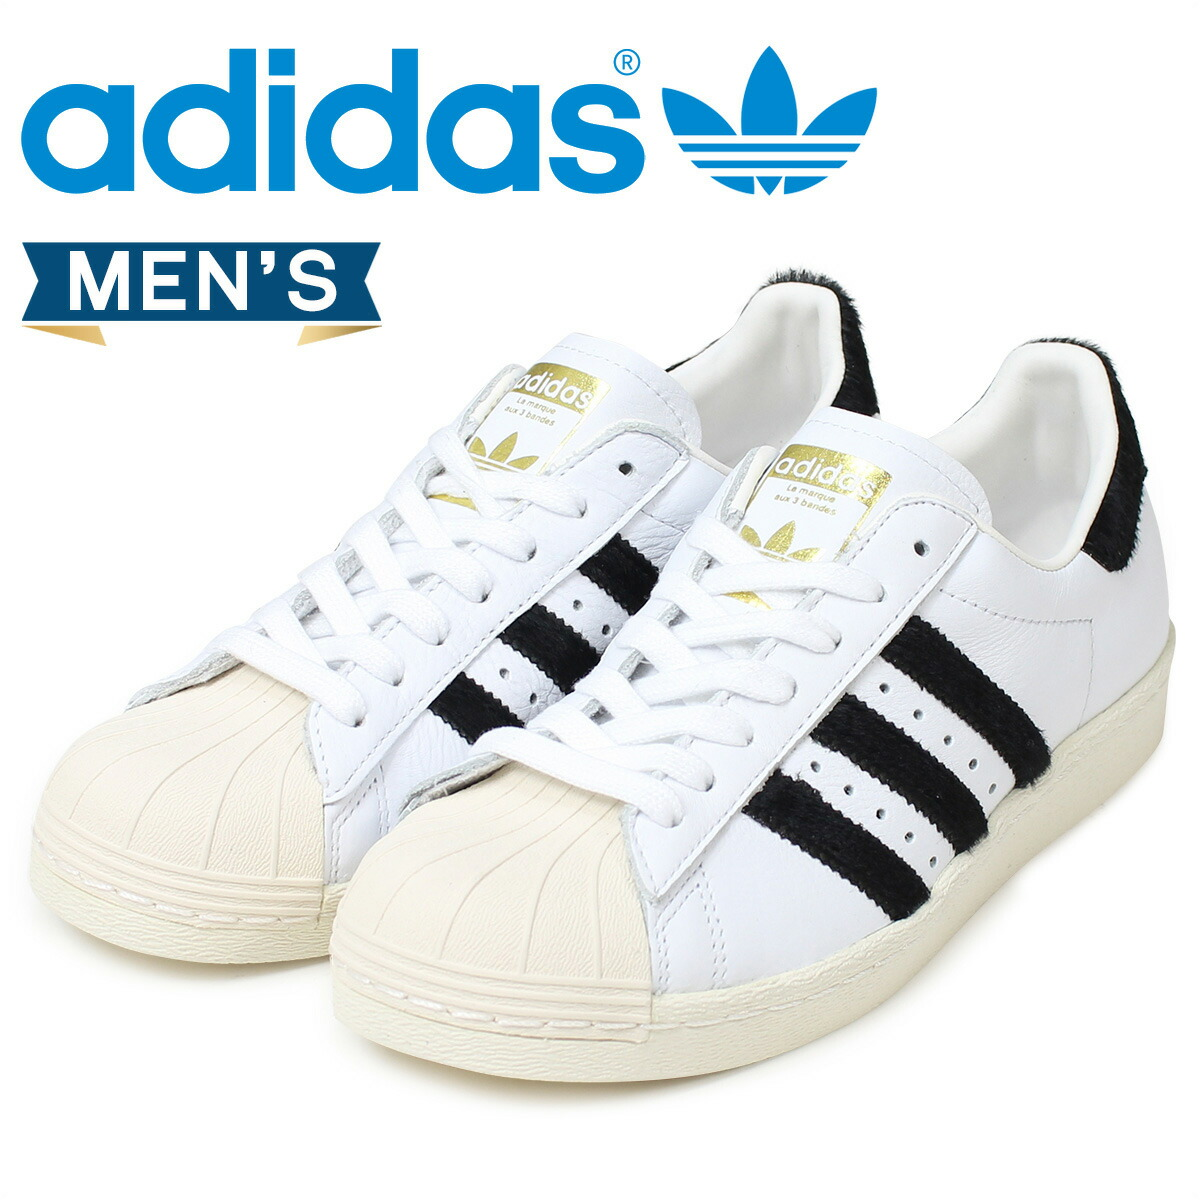 adidas superstar classic shoes